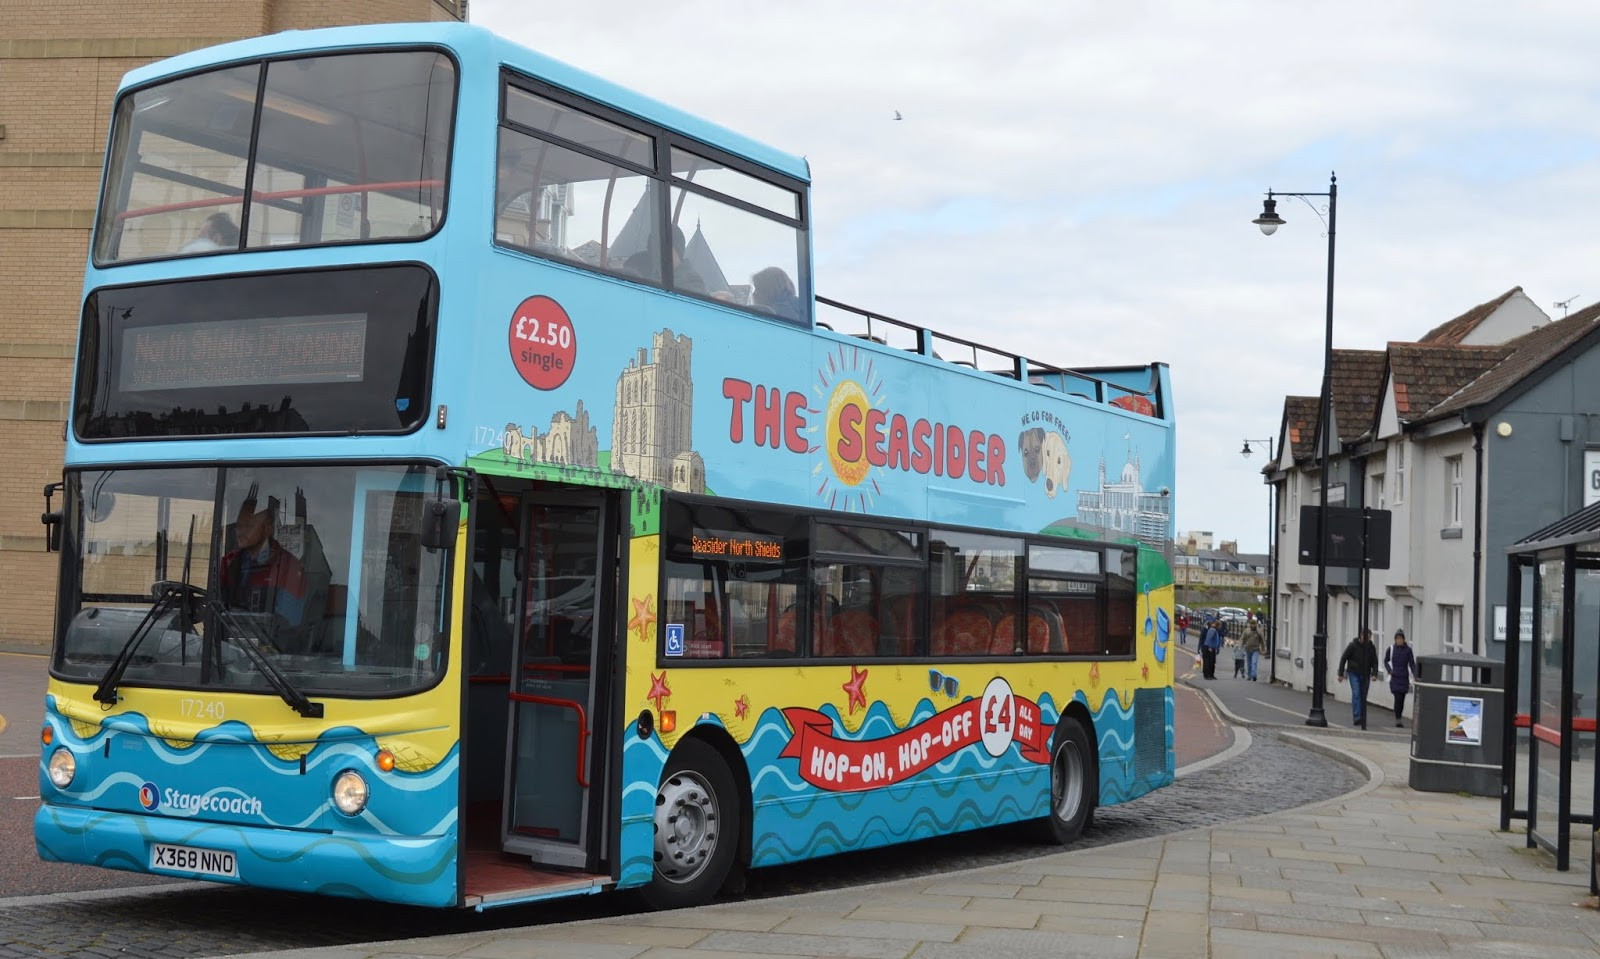 The Best Family Days Out in North East England  - The Seasider Open Top Bus Top